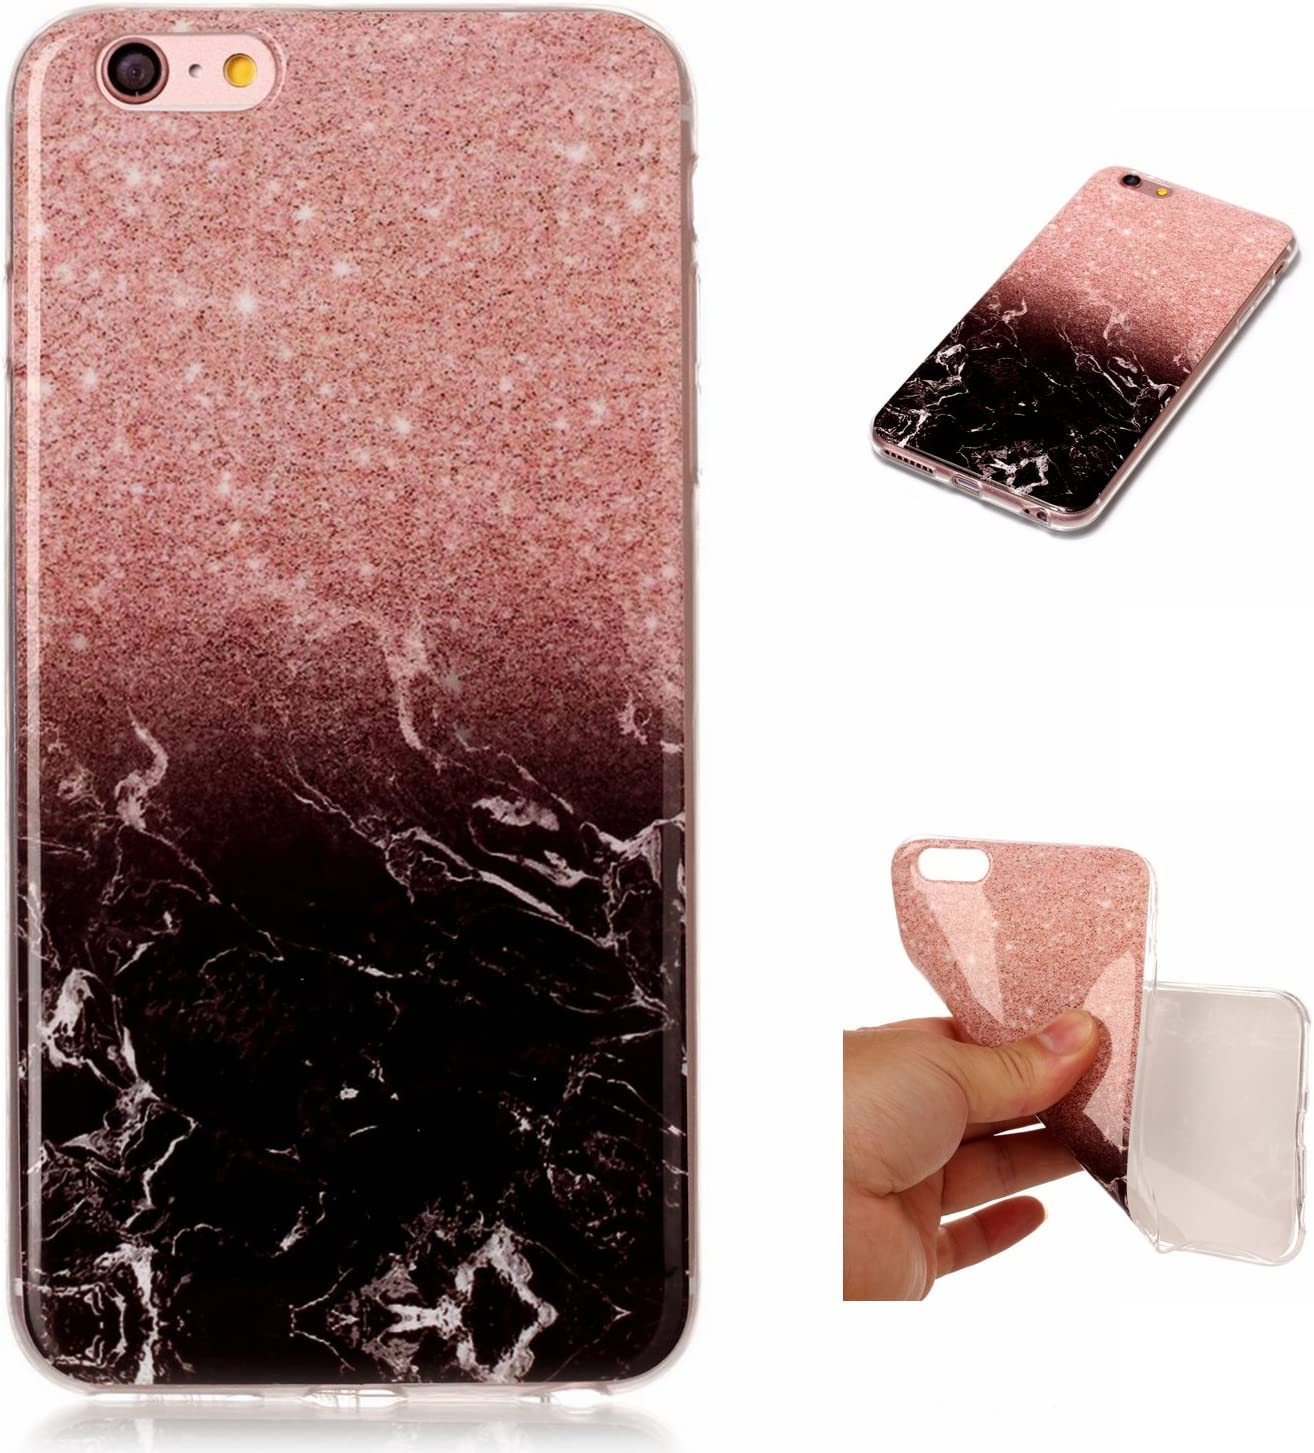 Cover iPhone 6 6s Sportfun Modello in